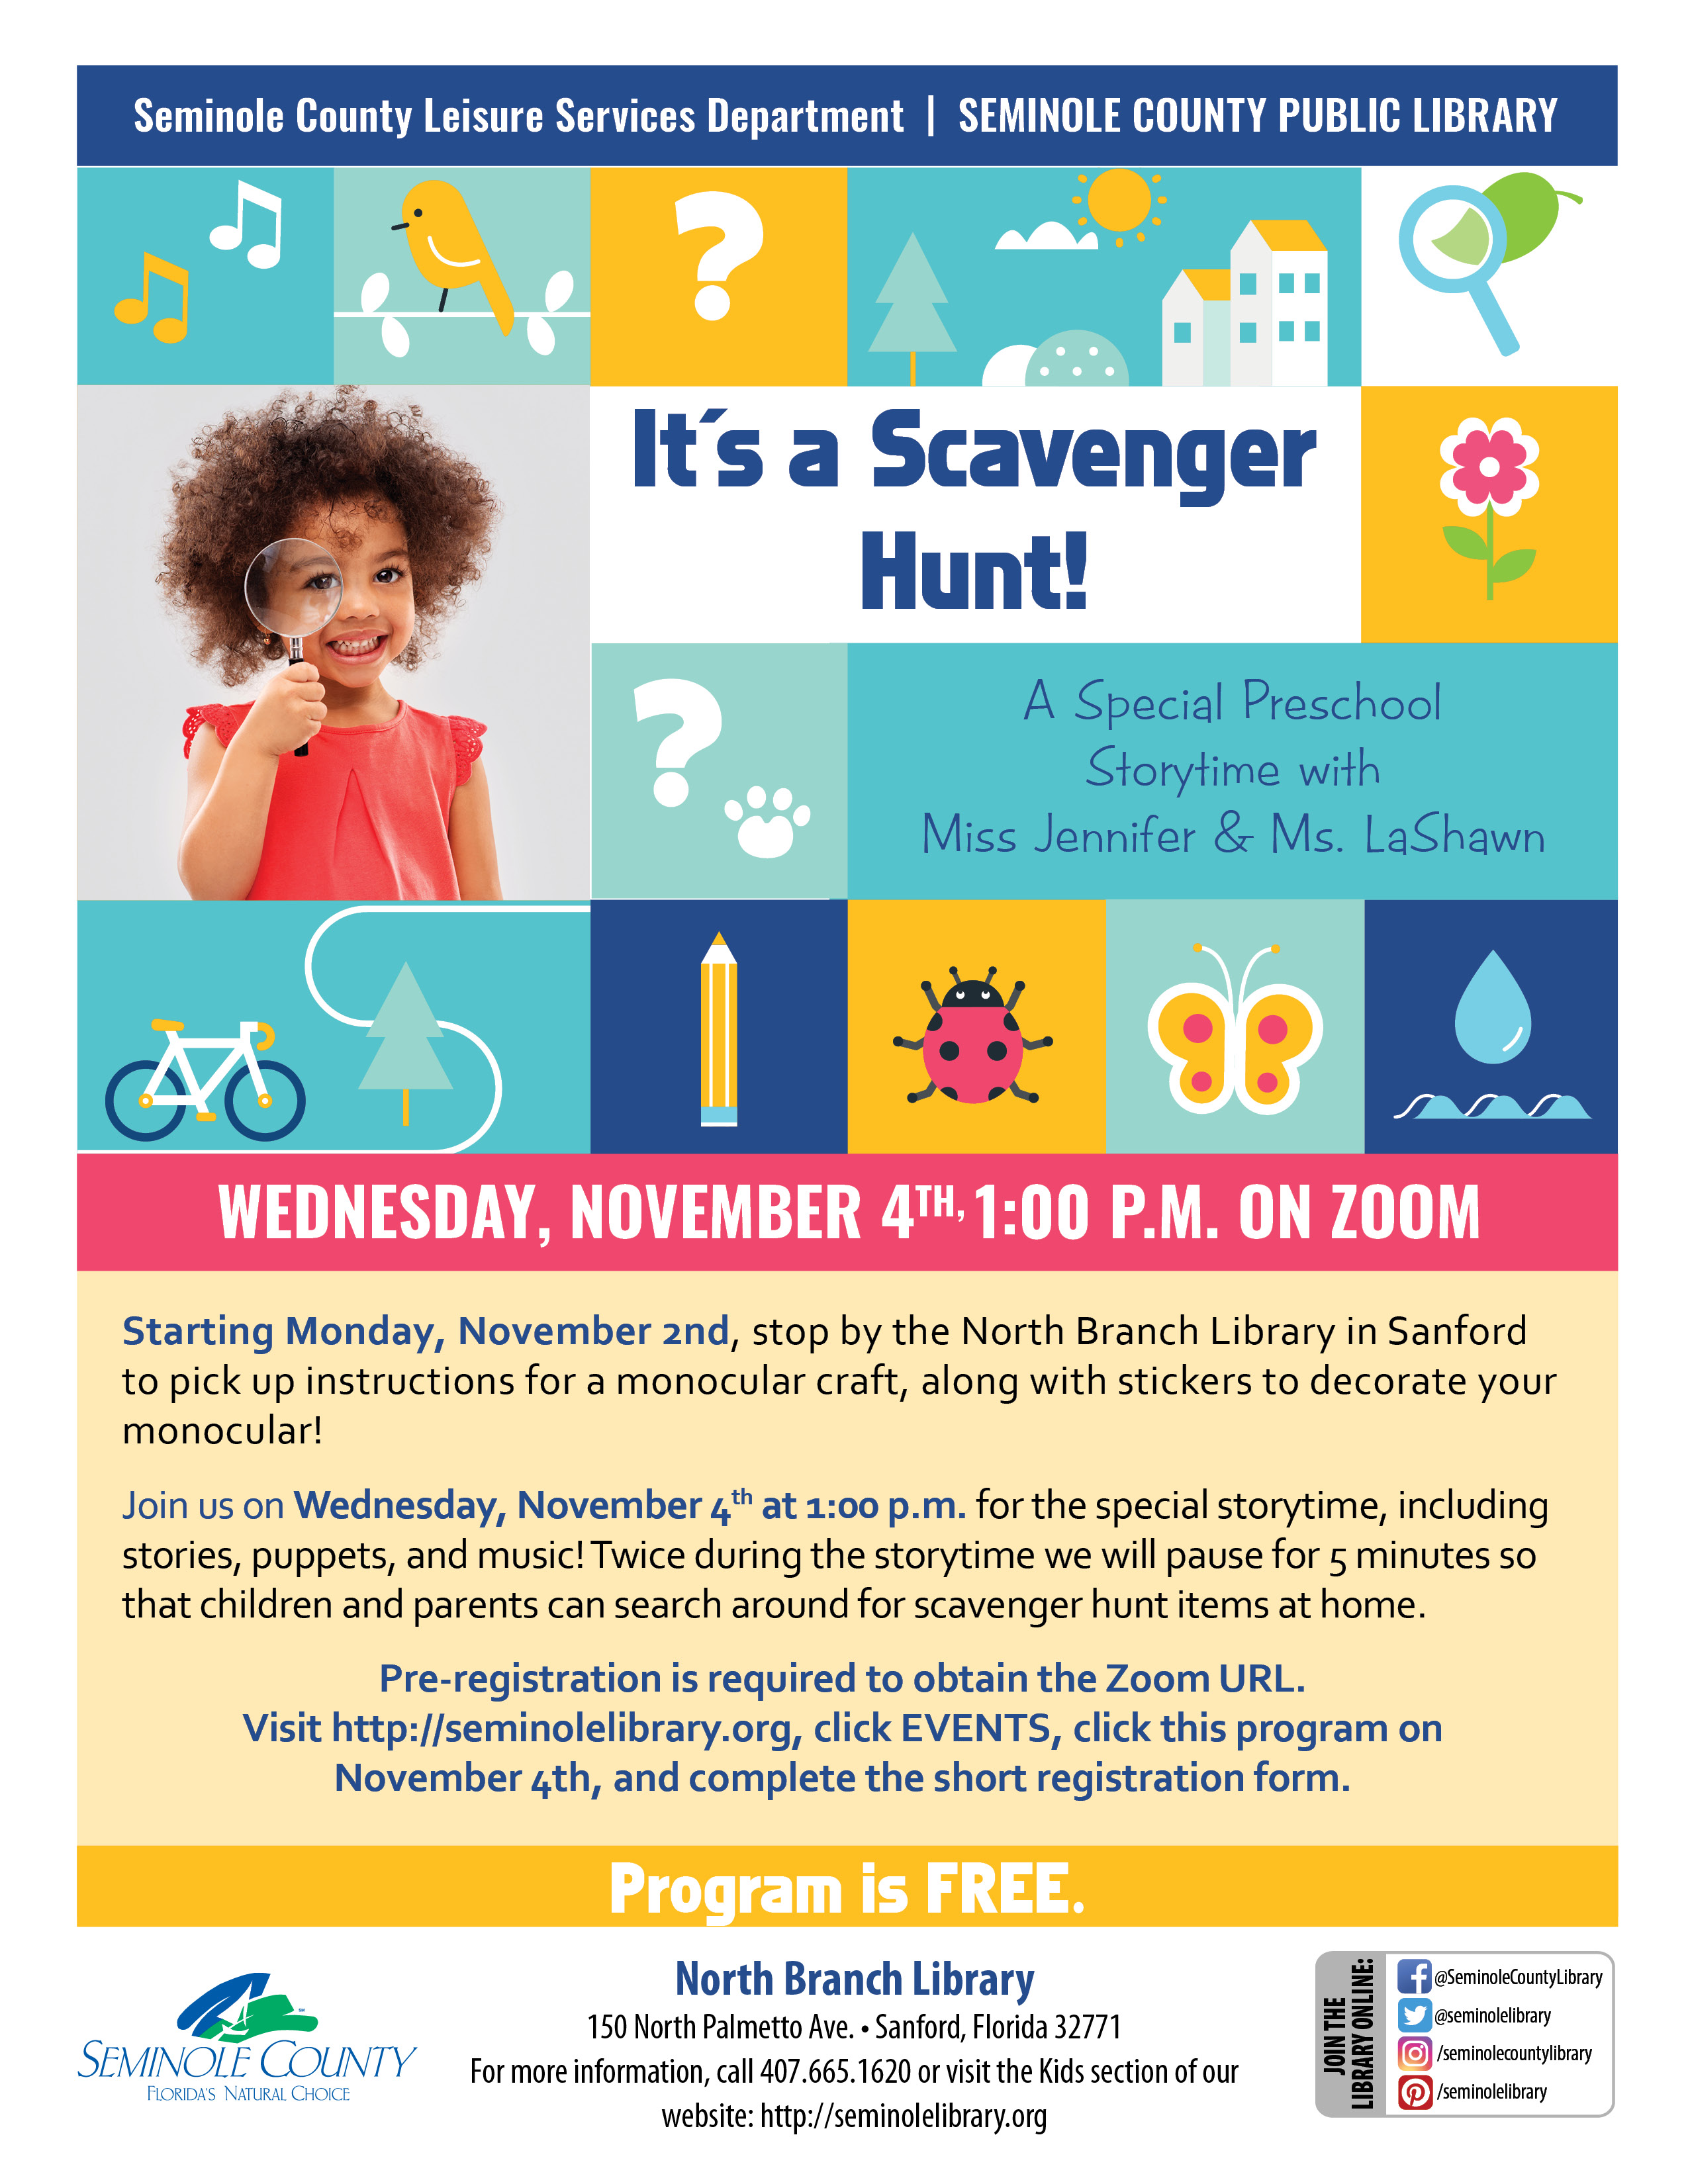 It's a Scavenger Hunt Preschool Storytime